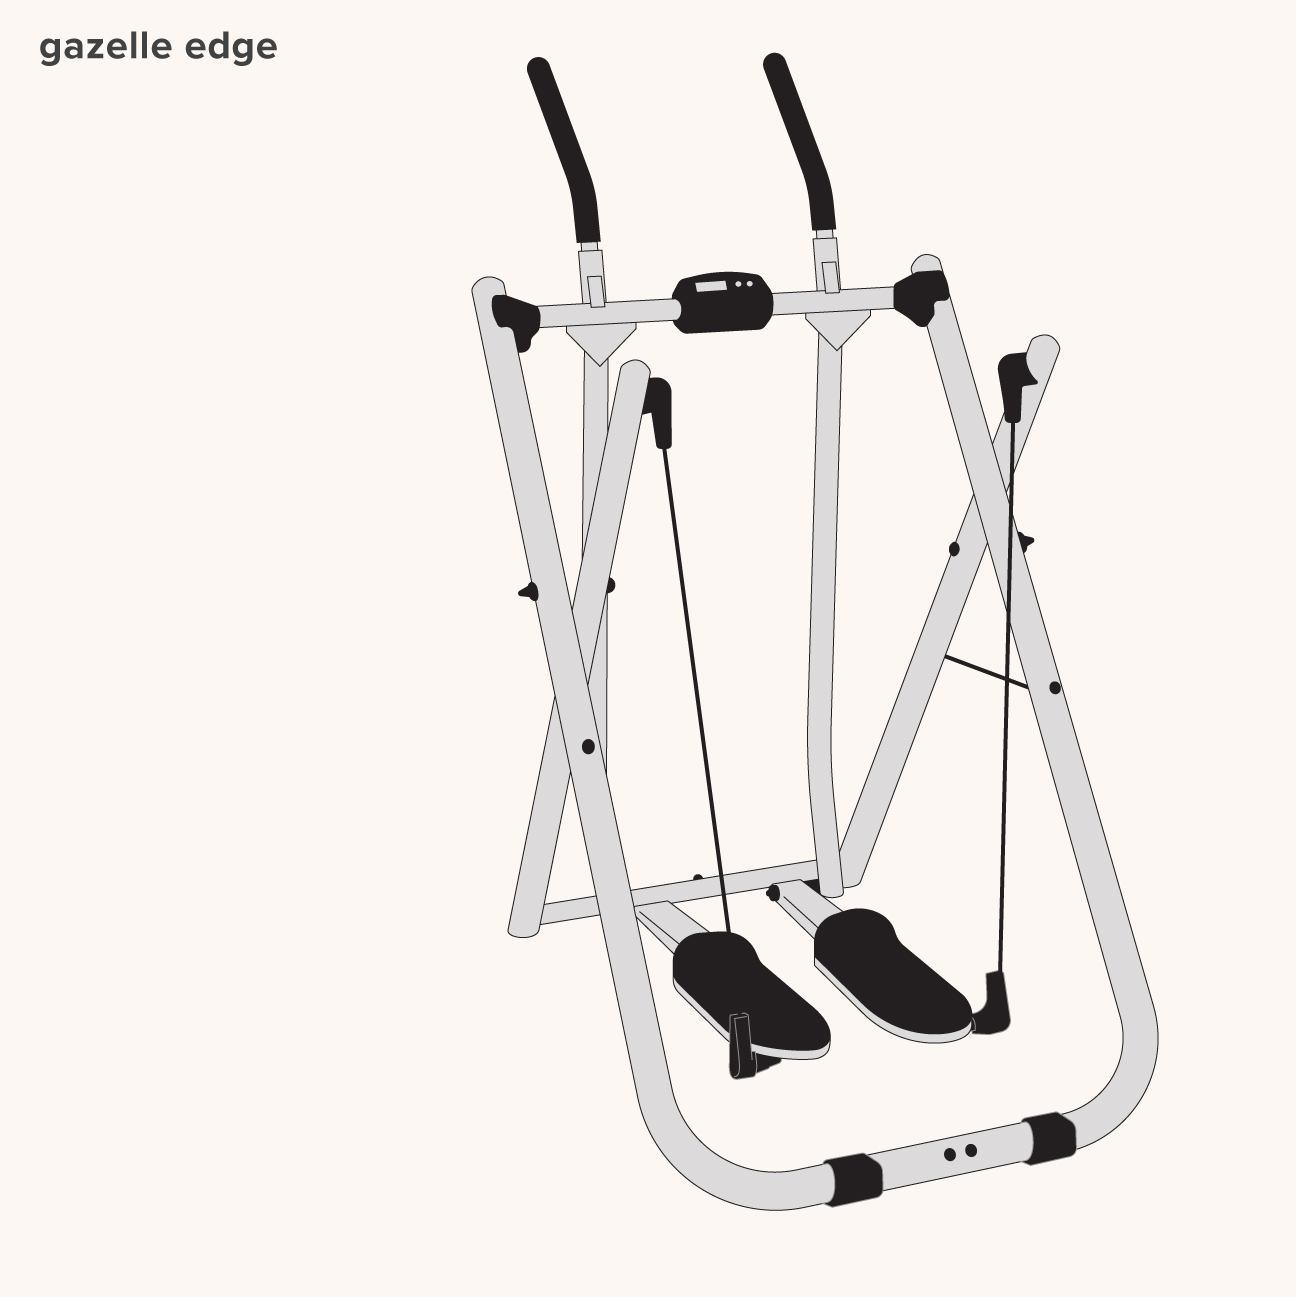 Gazelle Exercise Machine: How Effective is It?